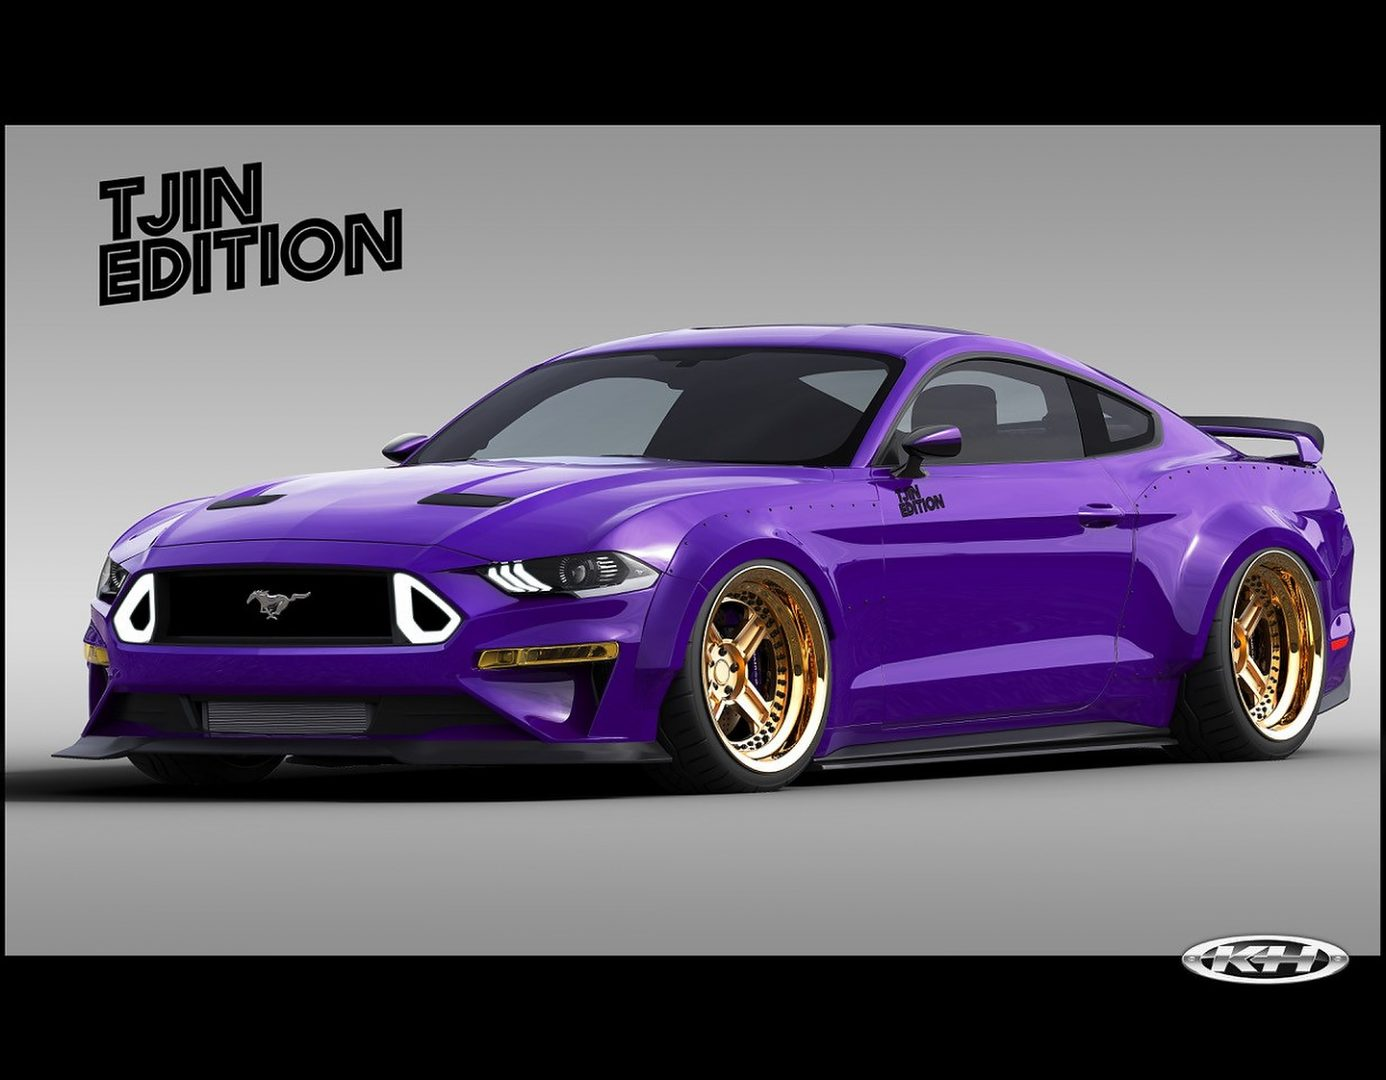 TJIN Edition EcoBoost Mustang | Photo: Ford